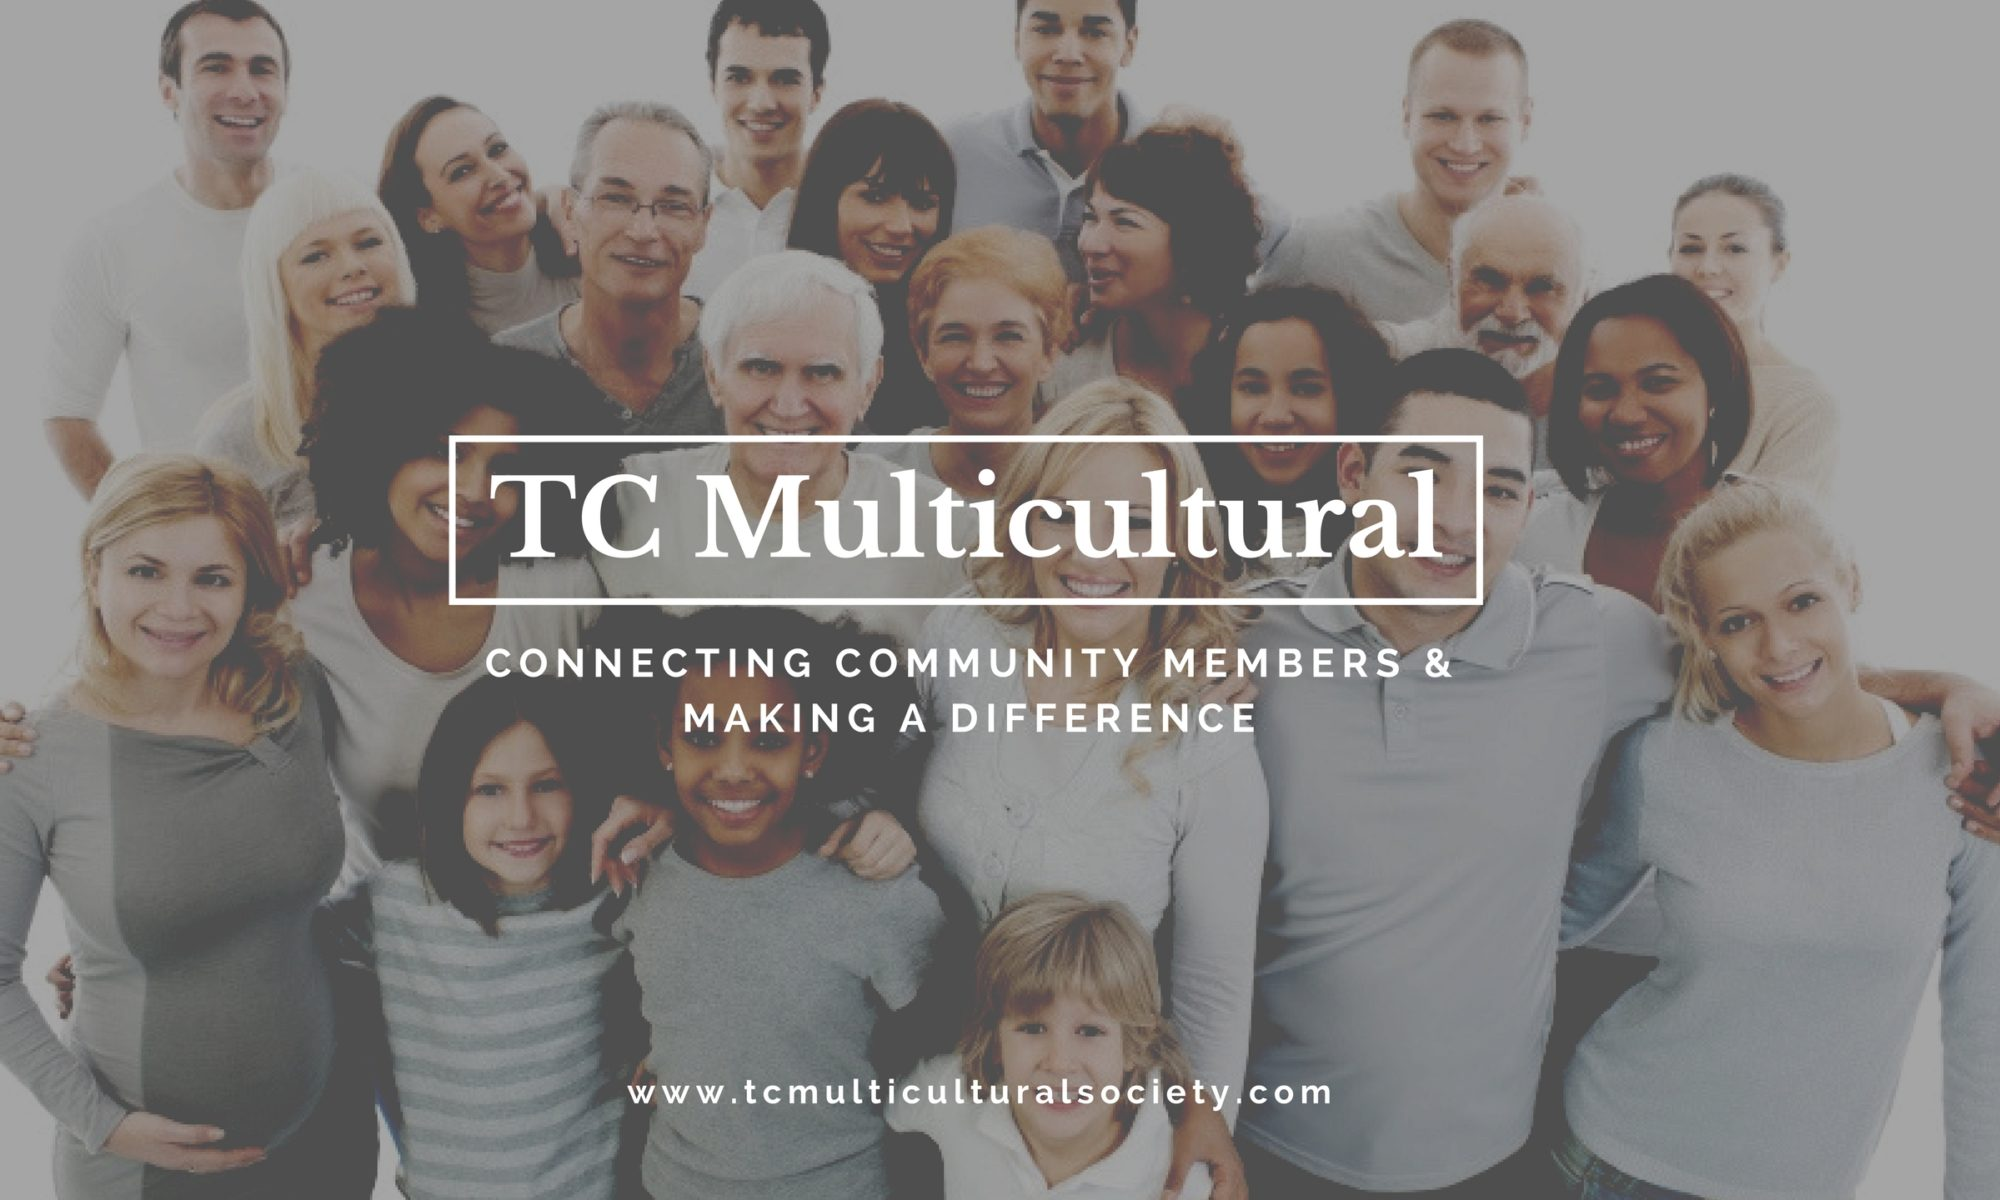 TC Multicultural Society